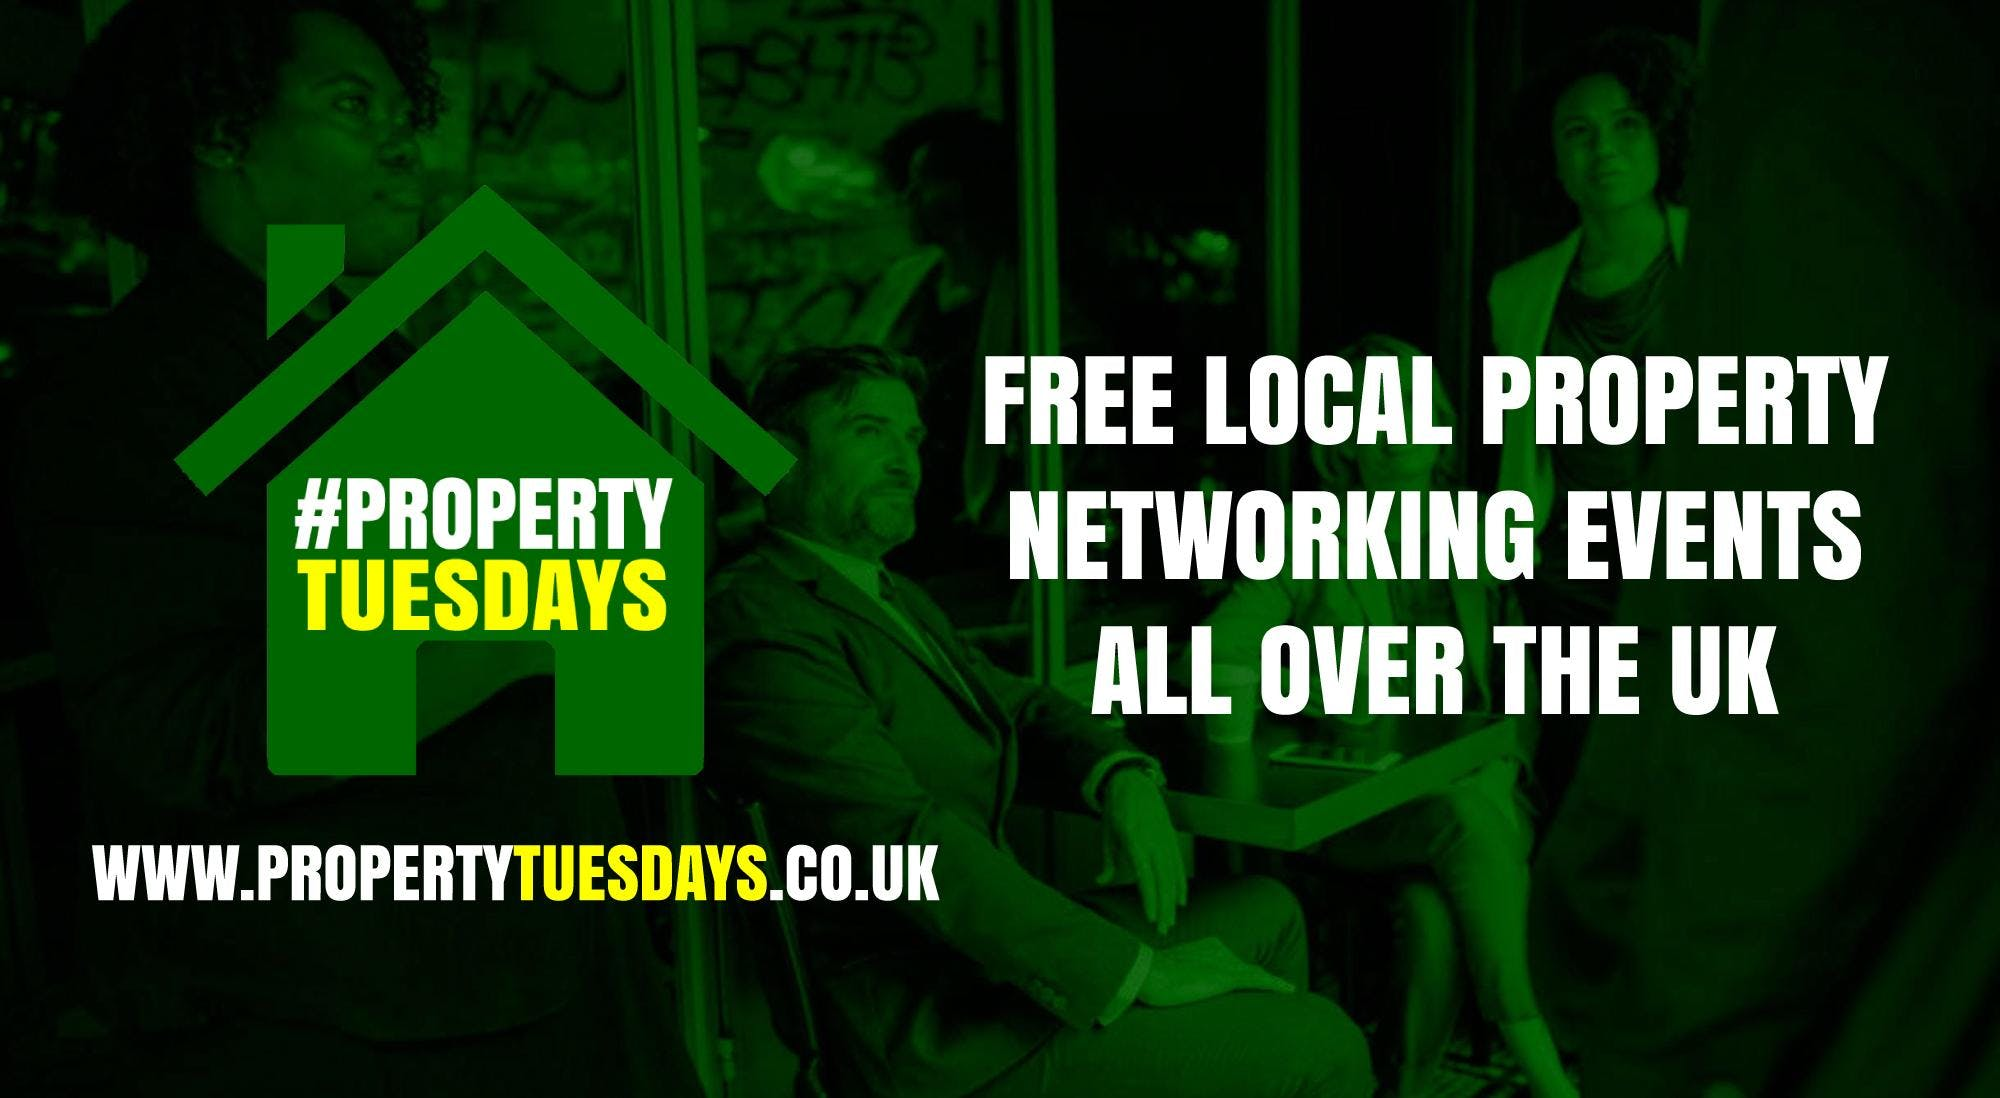 Property Tuesdays! Free property networking event in Teignmouth